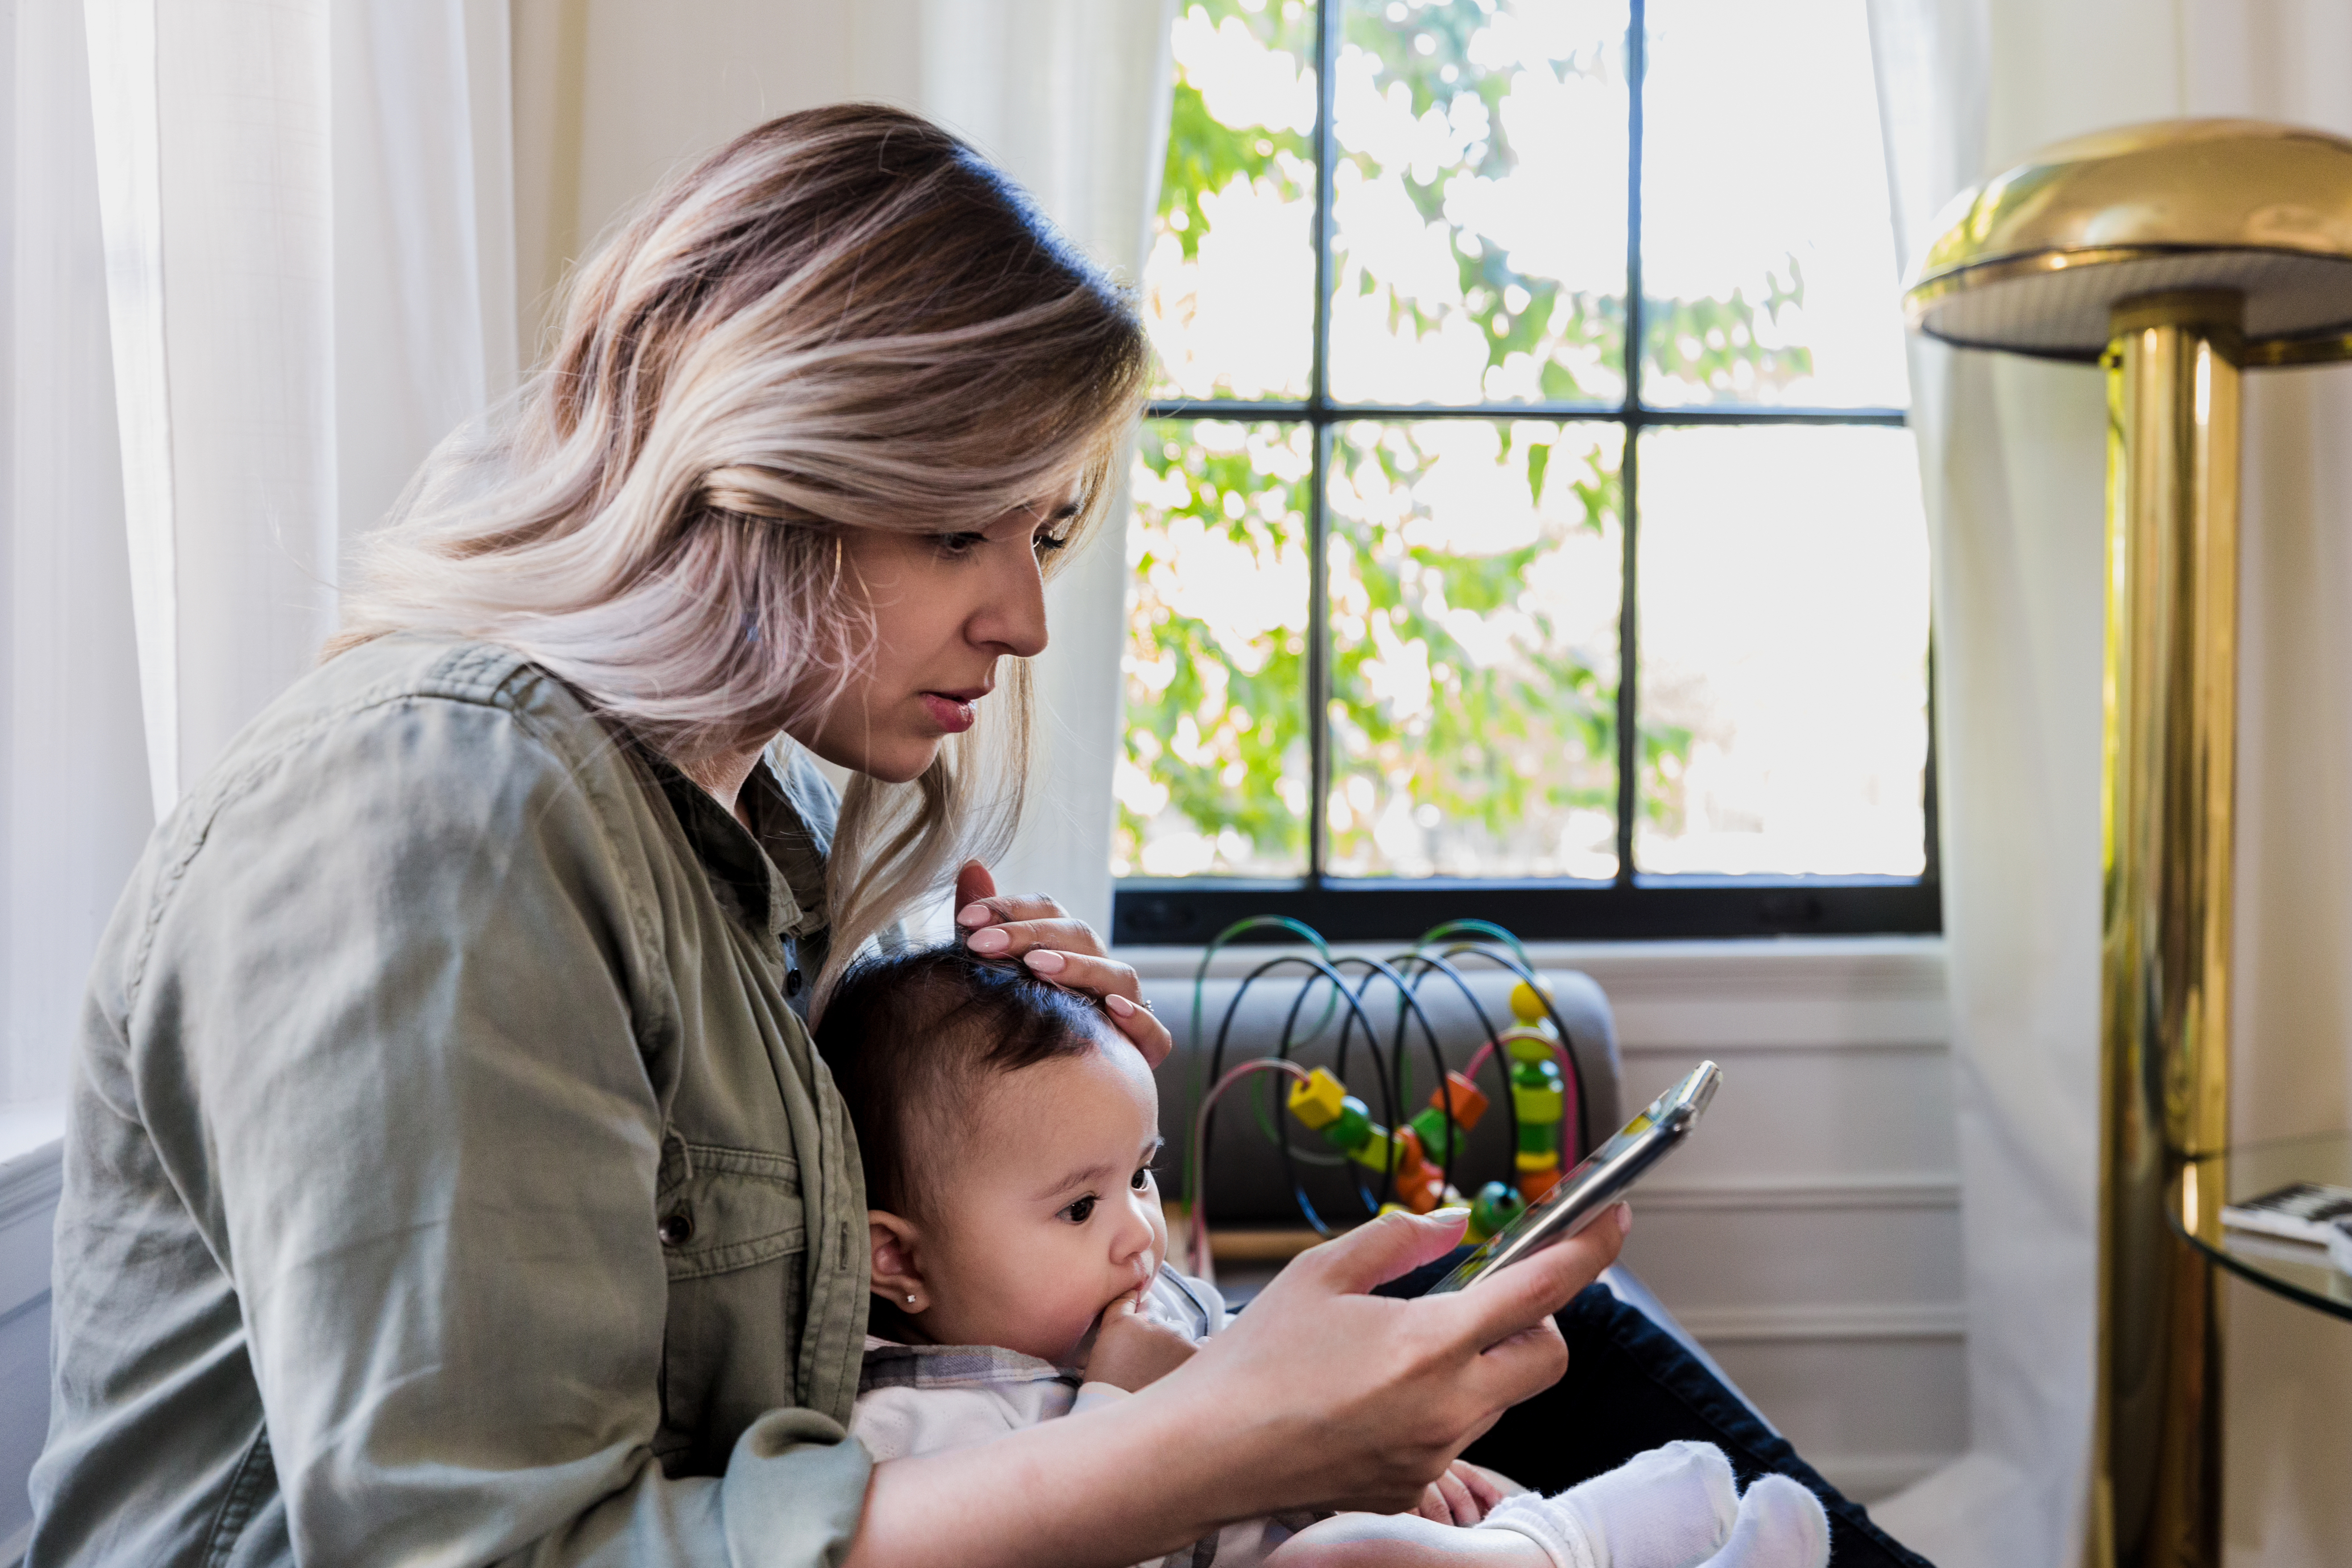 The worried mid adult mother uses her smart phone to find information about illness in babies.